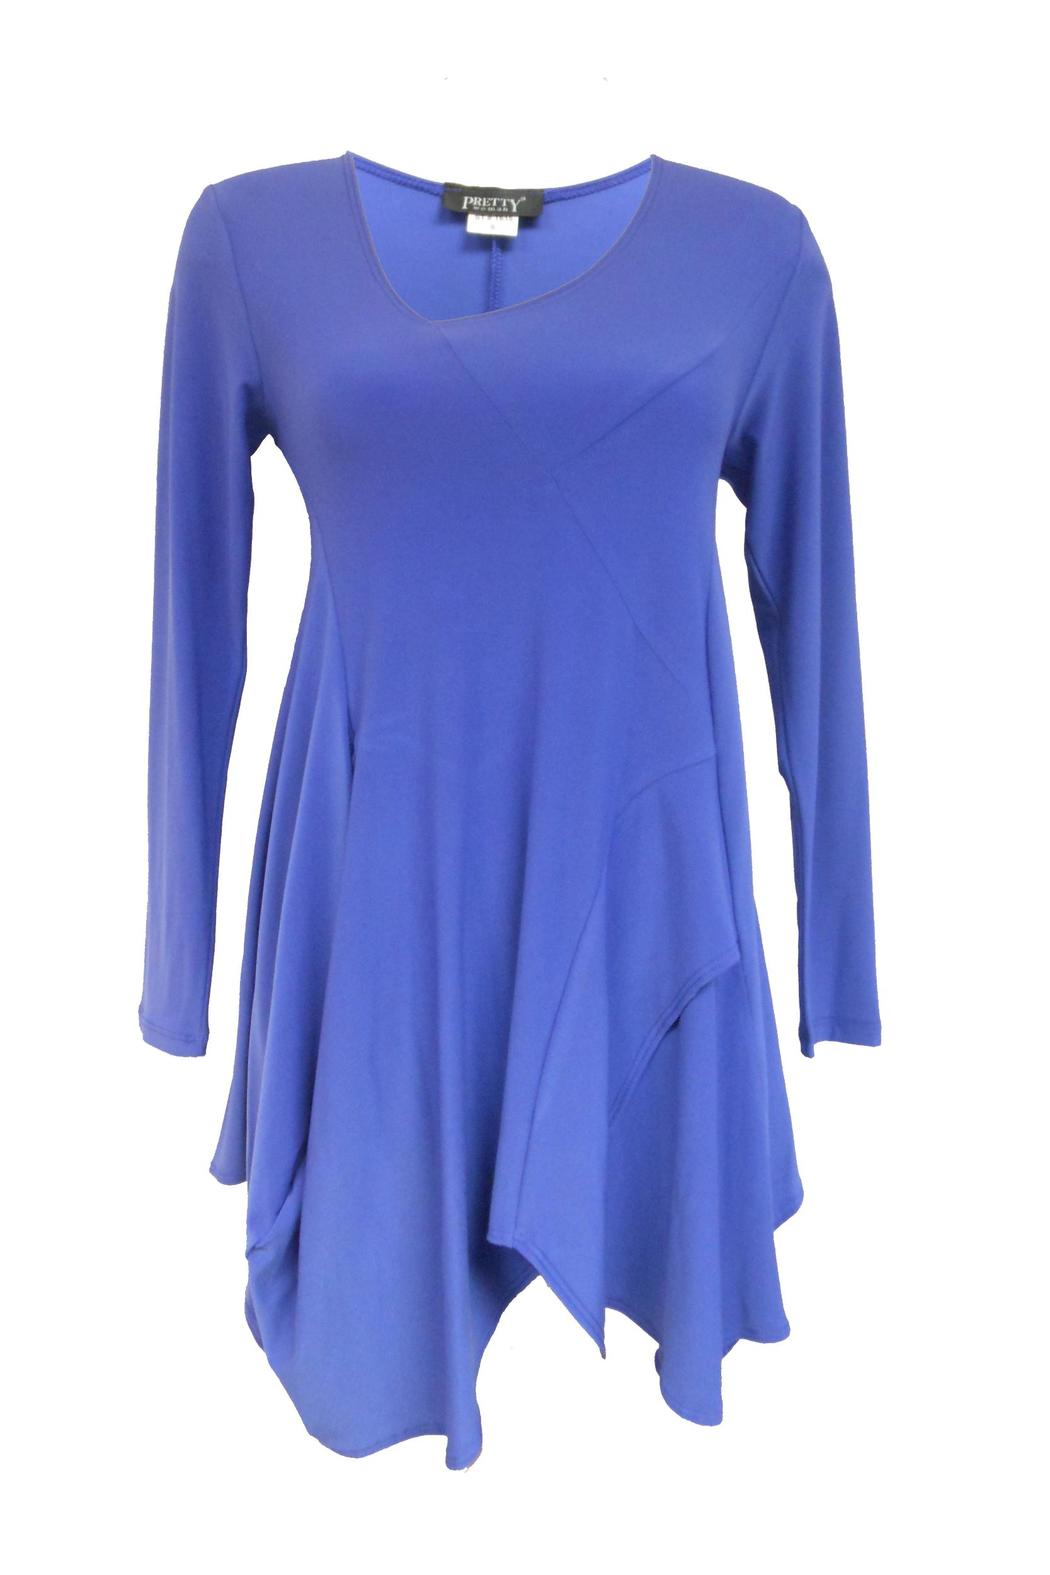 Pretty Woman Periwinkle Drape Tunic - Front Cropped Image